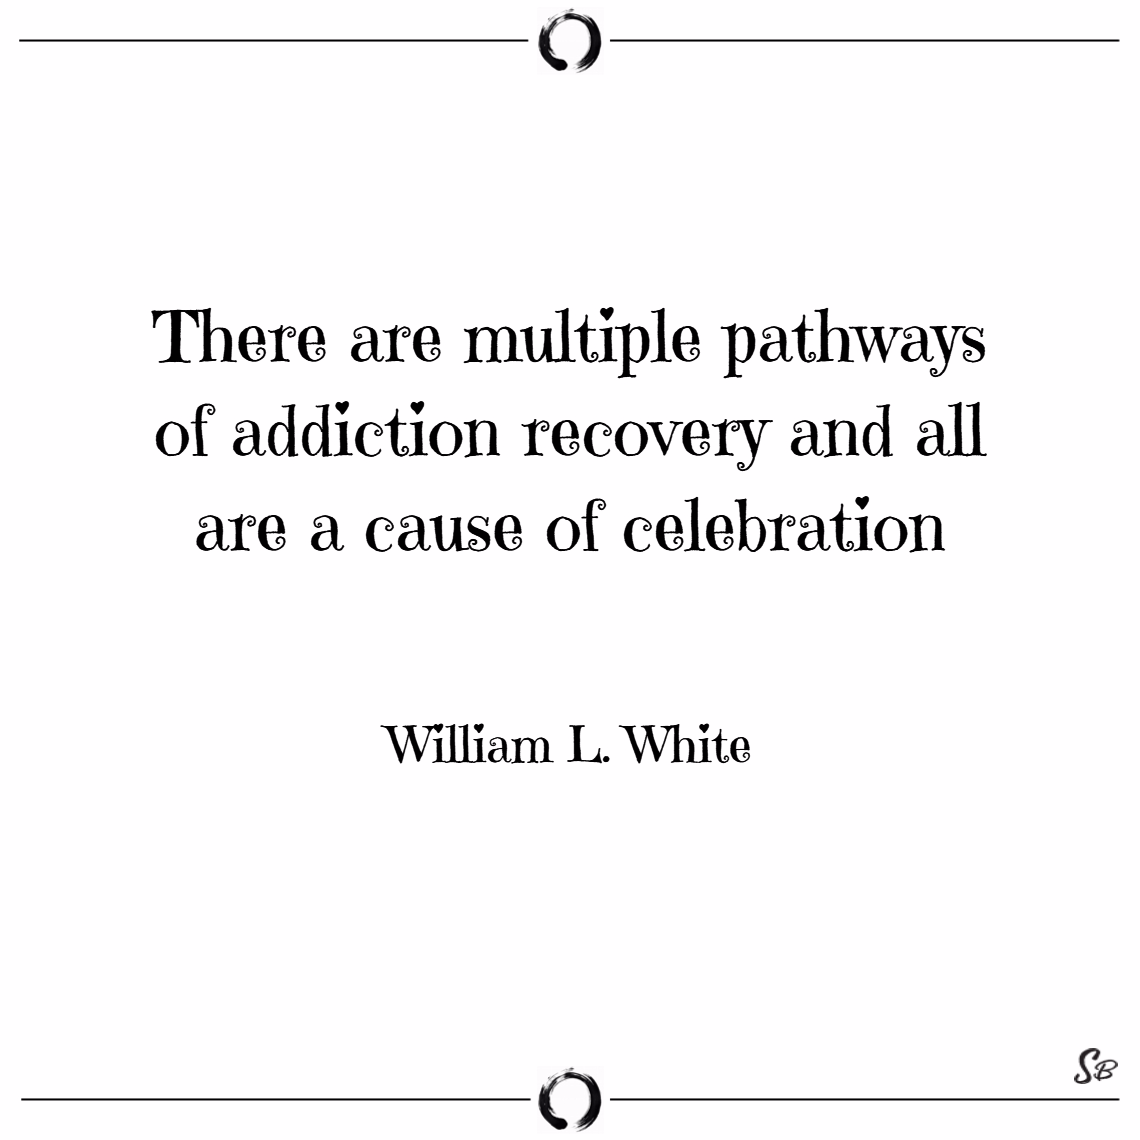 There are multiple pathways of addiction recovery and all are a cause of celebration. – william l. white